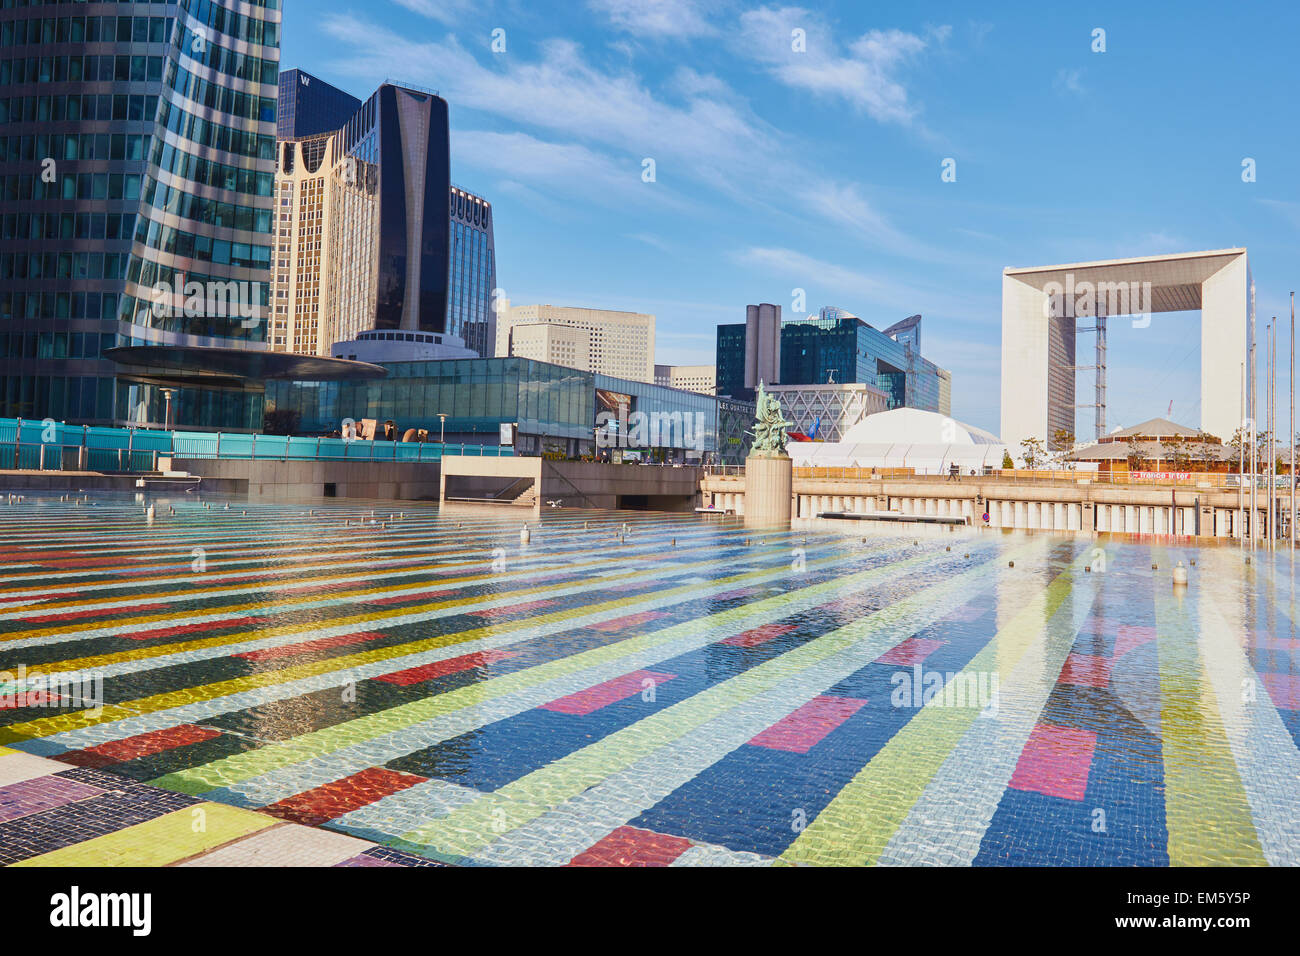 La Defense business district with the Grande Arche at its centre Paris France Europe - Stock Image